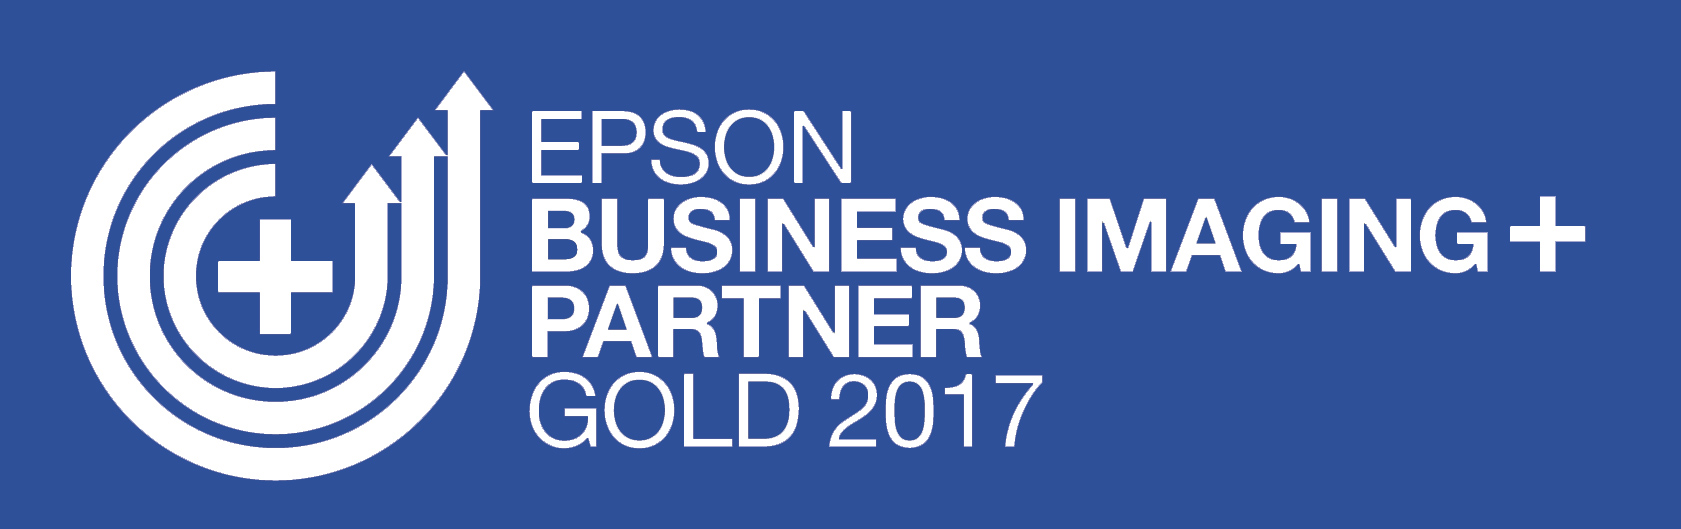 Epson Bussiness Imagin+ Partner